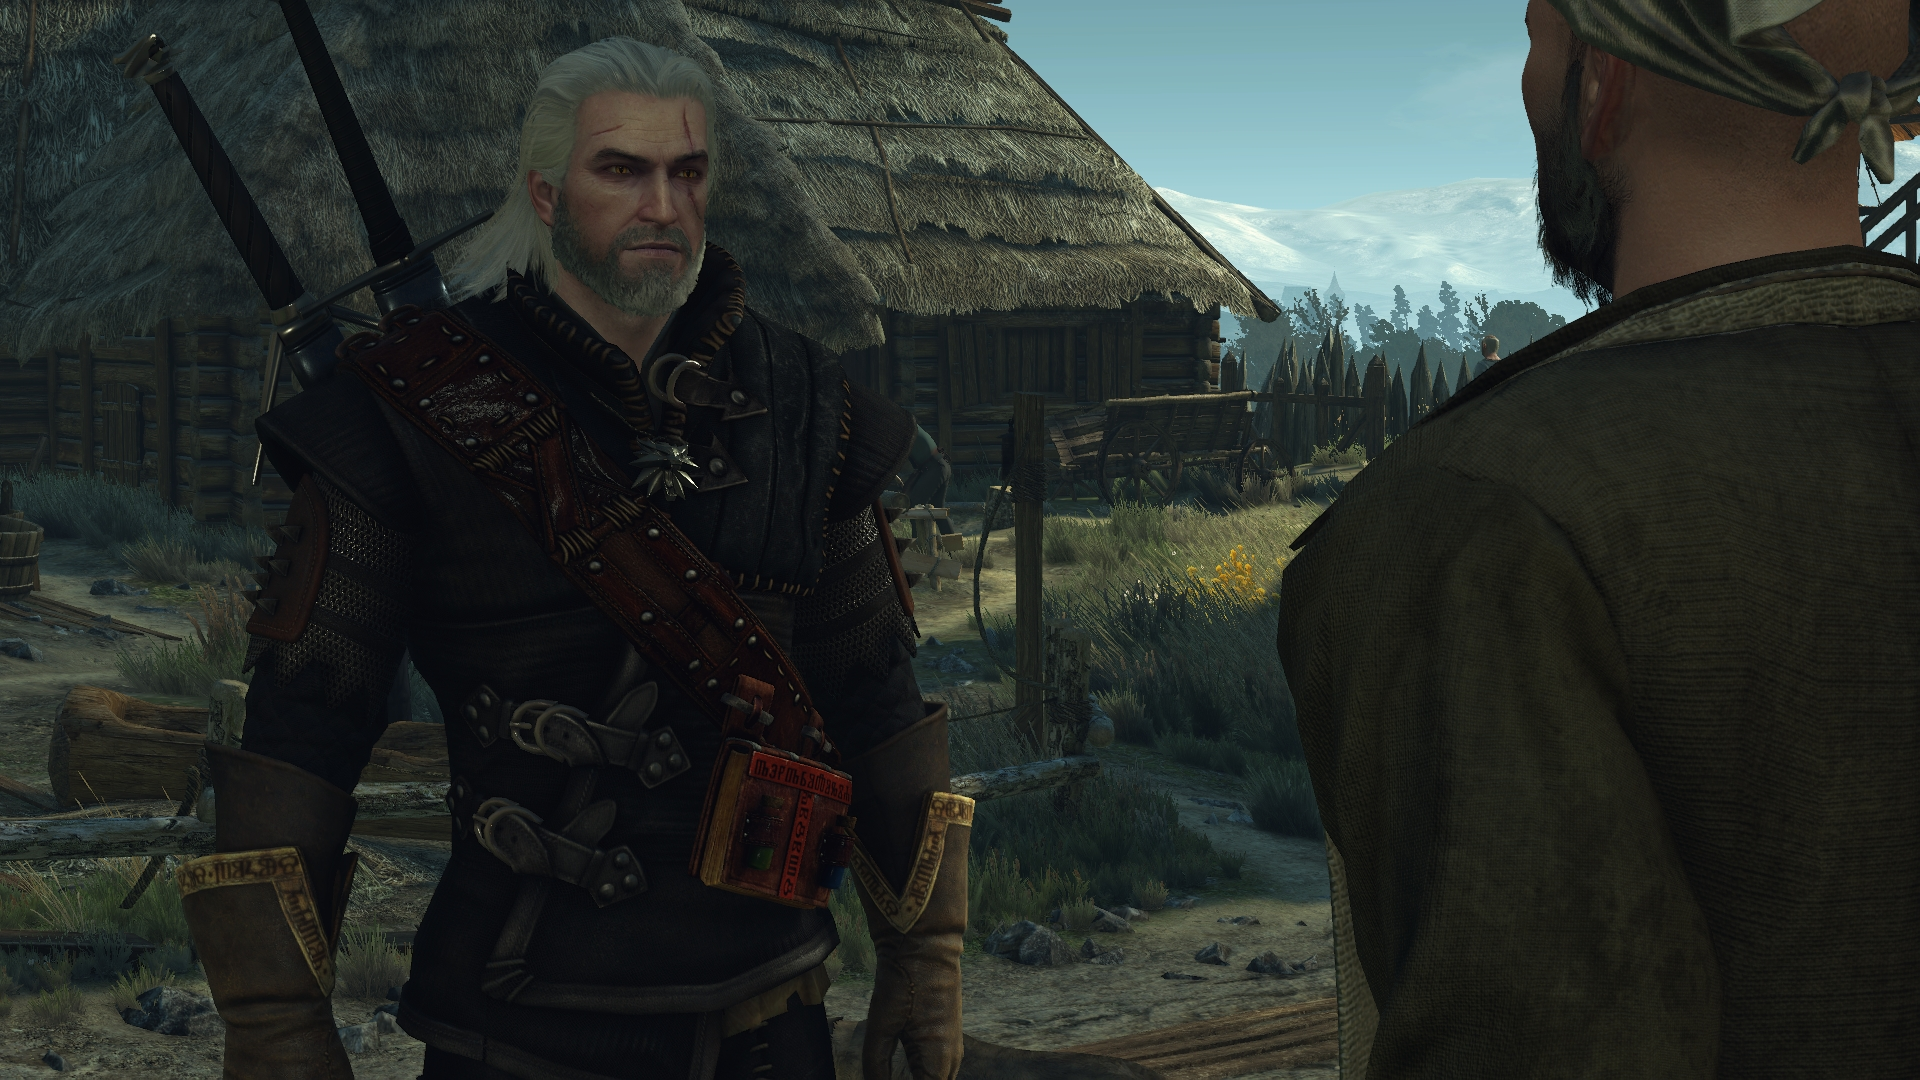 witcher 3 best gear and how to get it